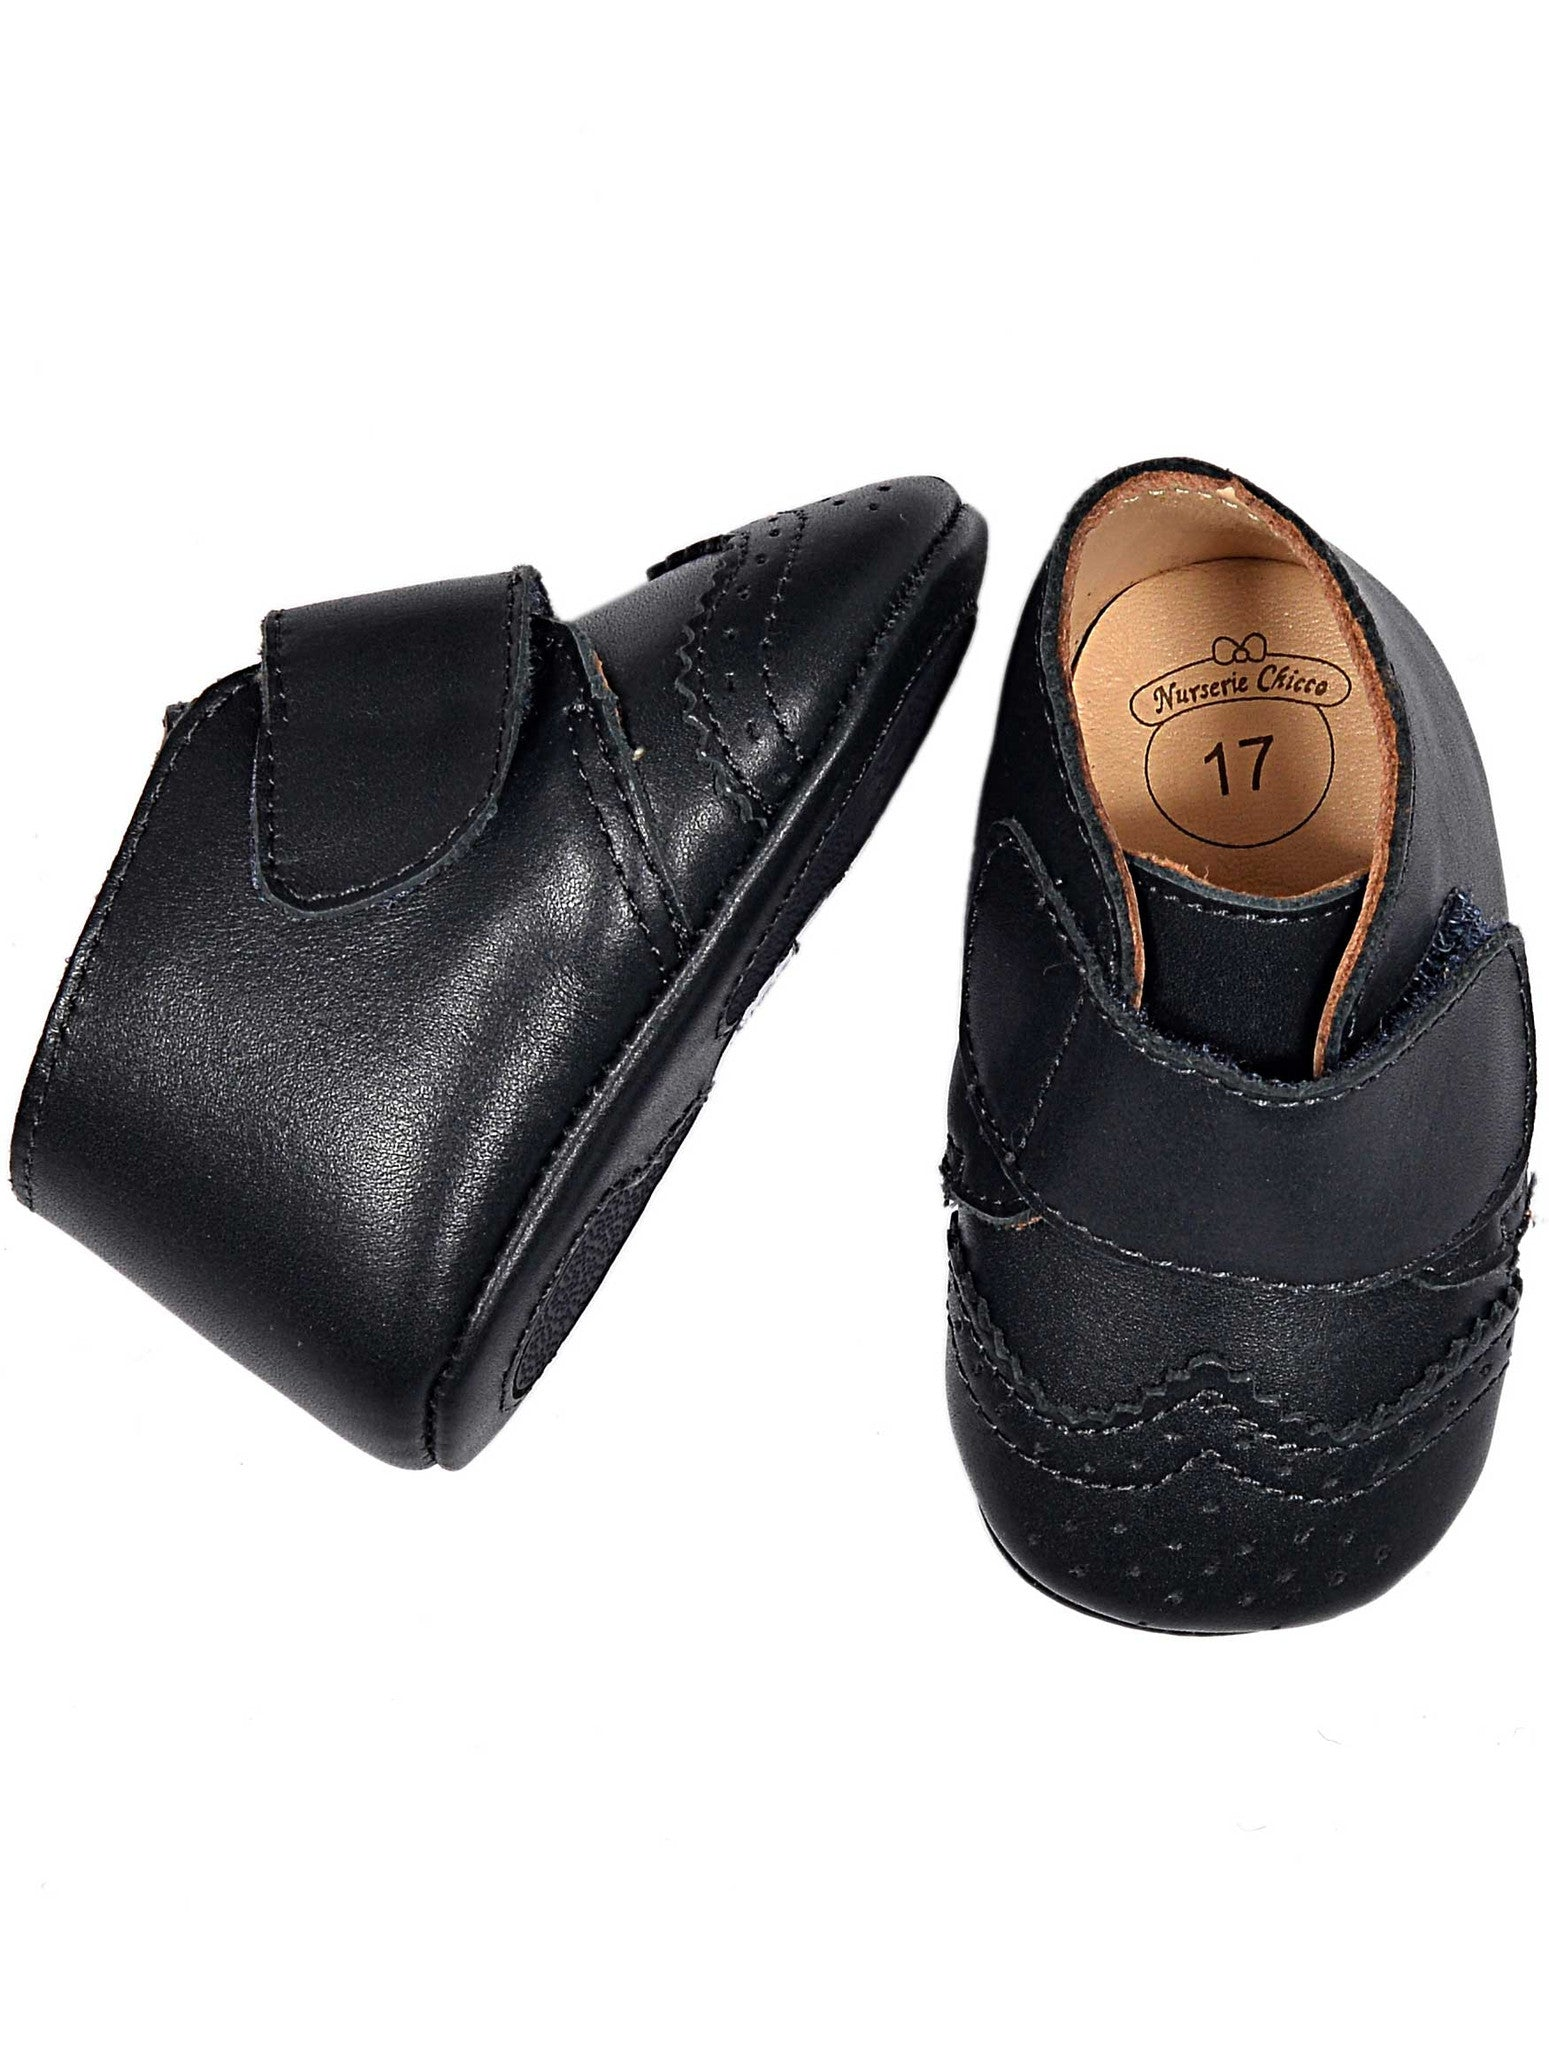 LEATHER SOFT SOLE SHOES